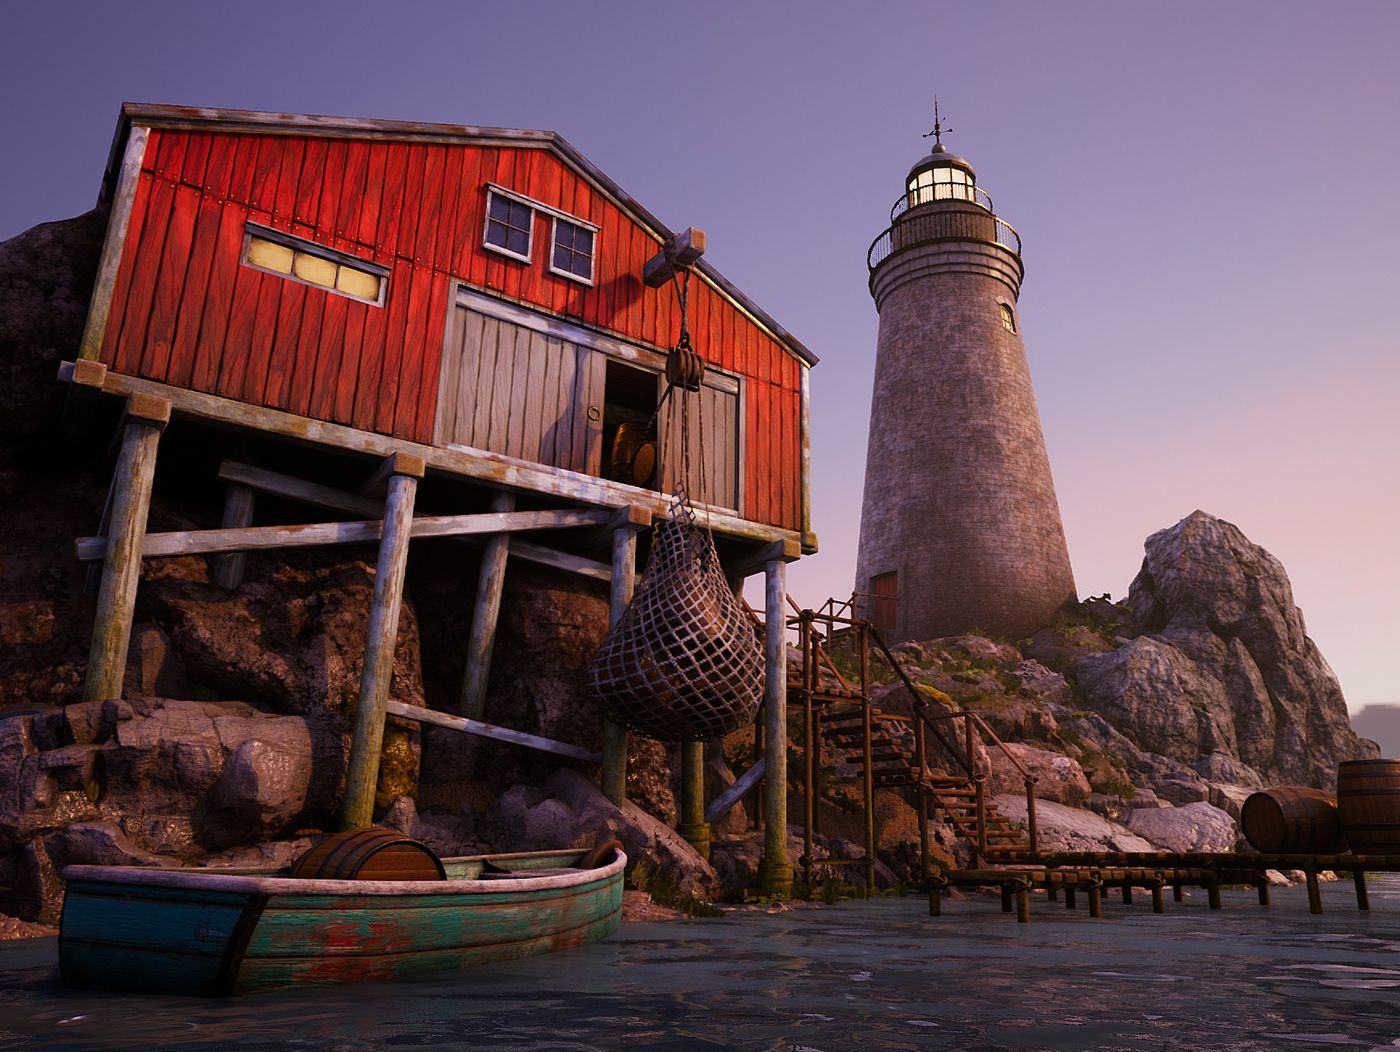 The Boathouse - 3 Day Art Test (UE4)